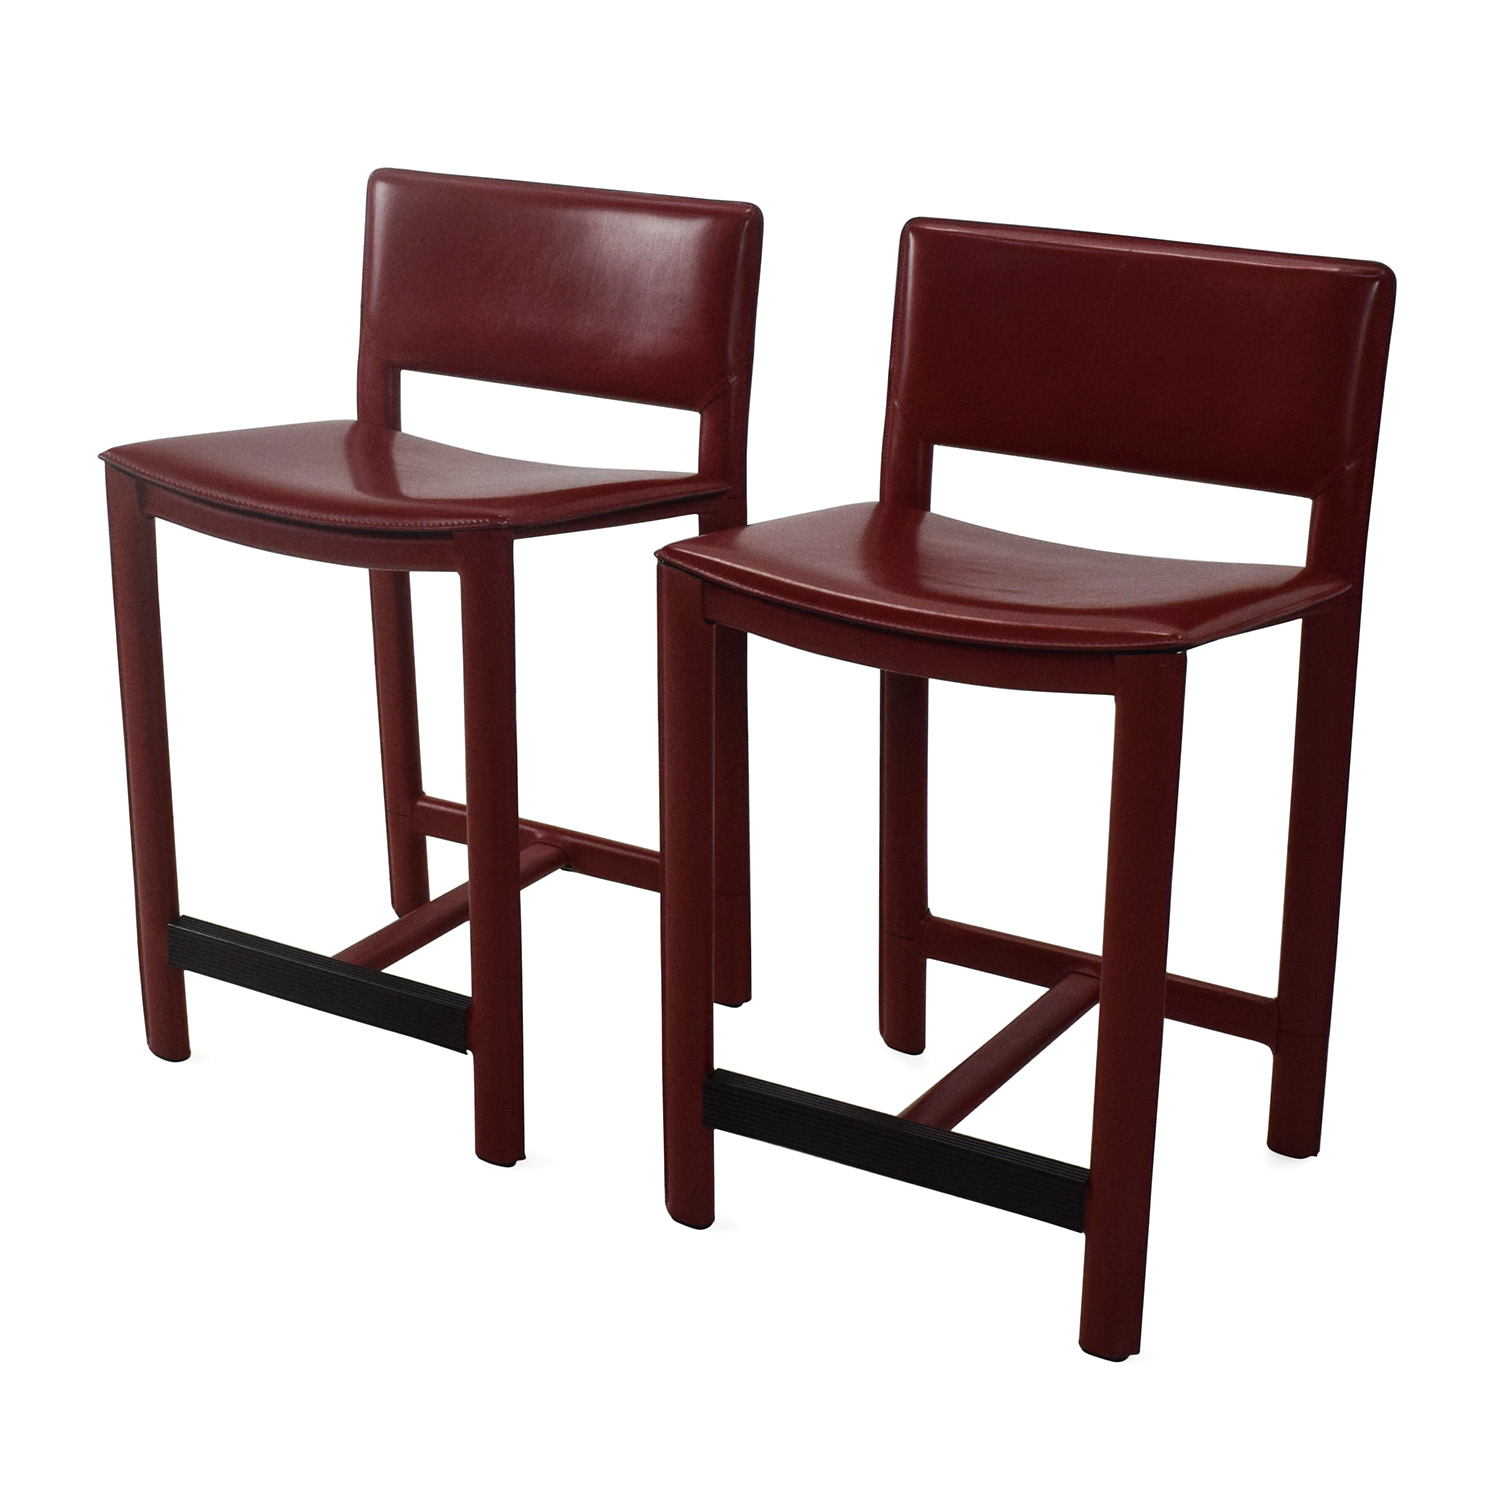 Room and Board Room Board Sava Leather Bar Stool Pair dimensions